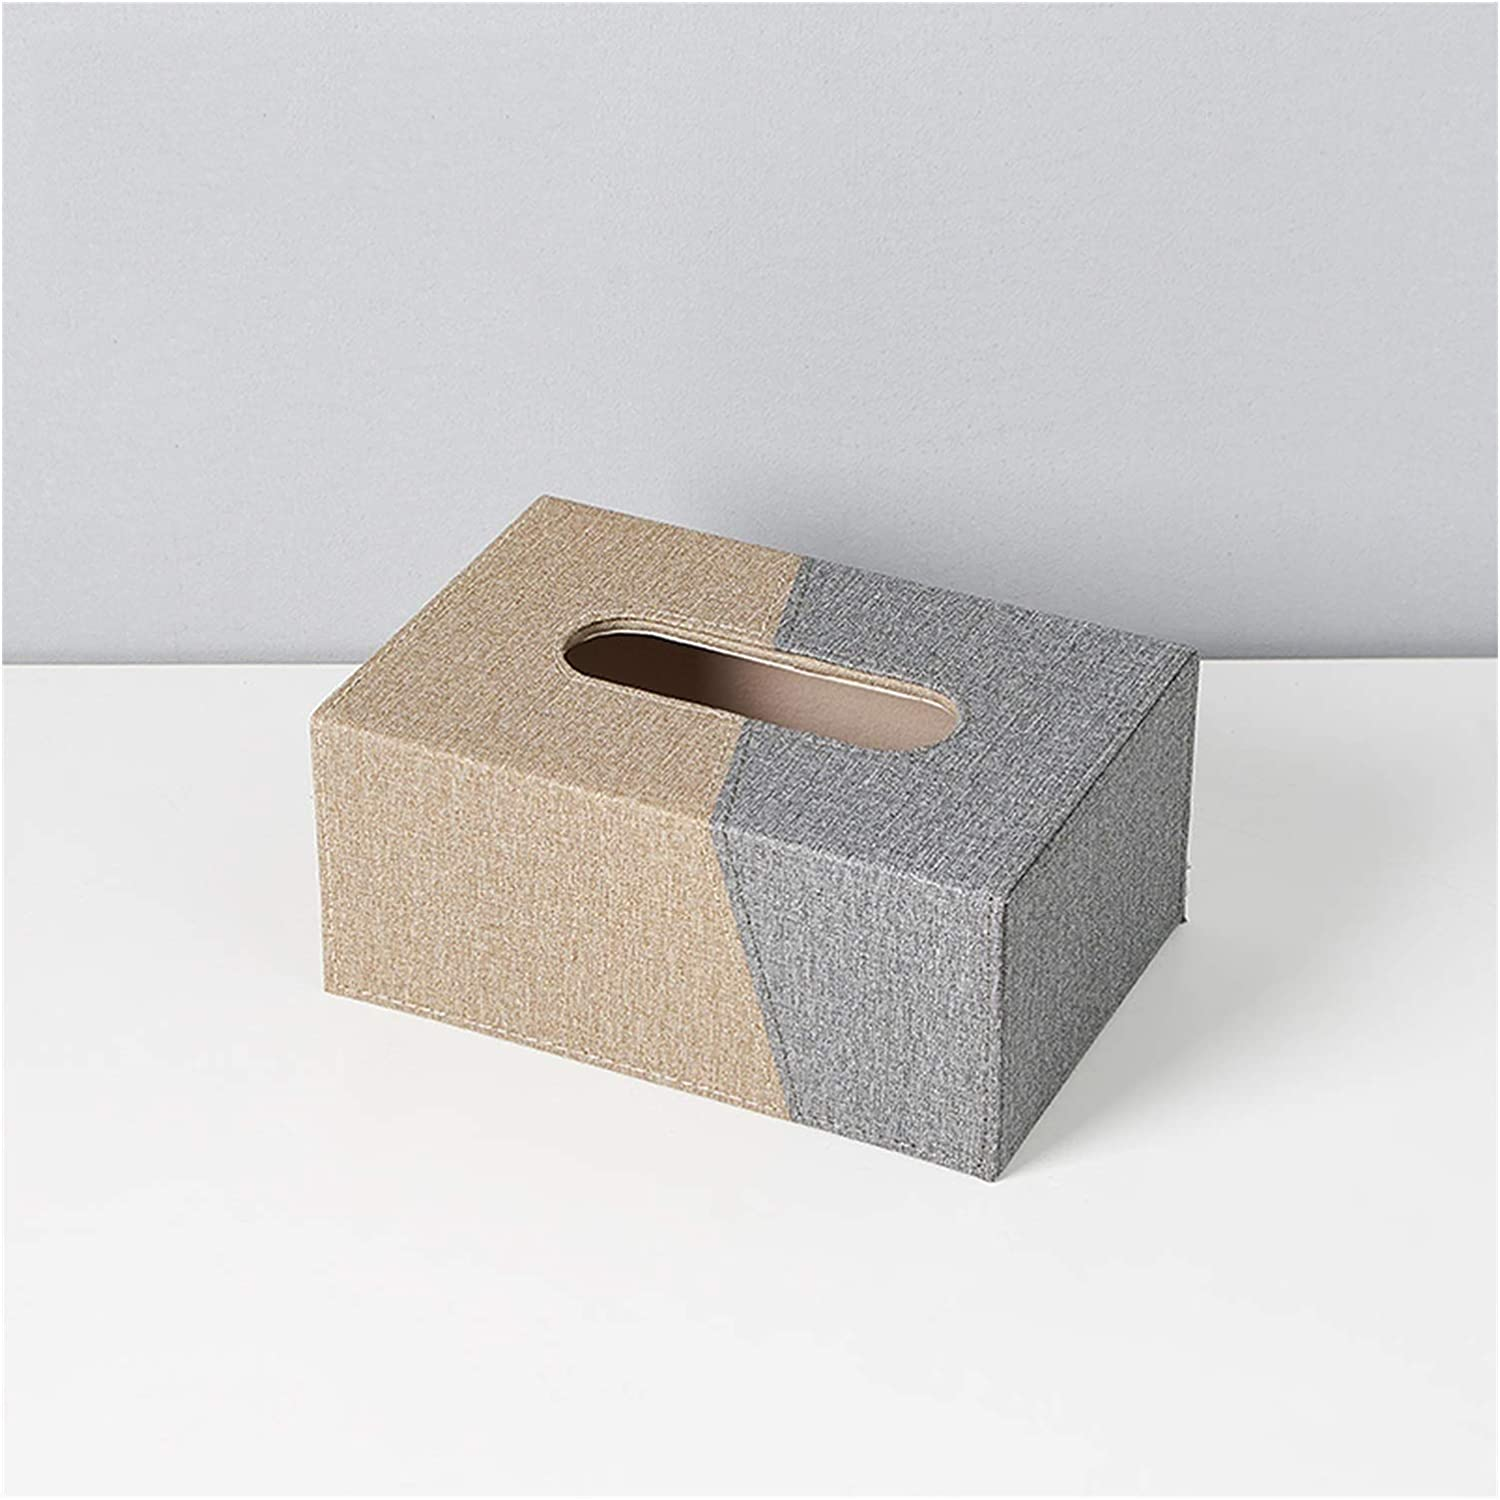 Tissue Manufacturer direct delivery Dispenser Box Suitable for Rooms New life of